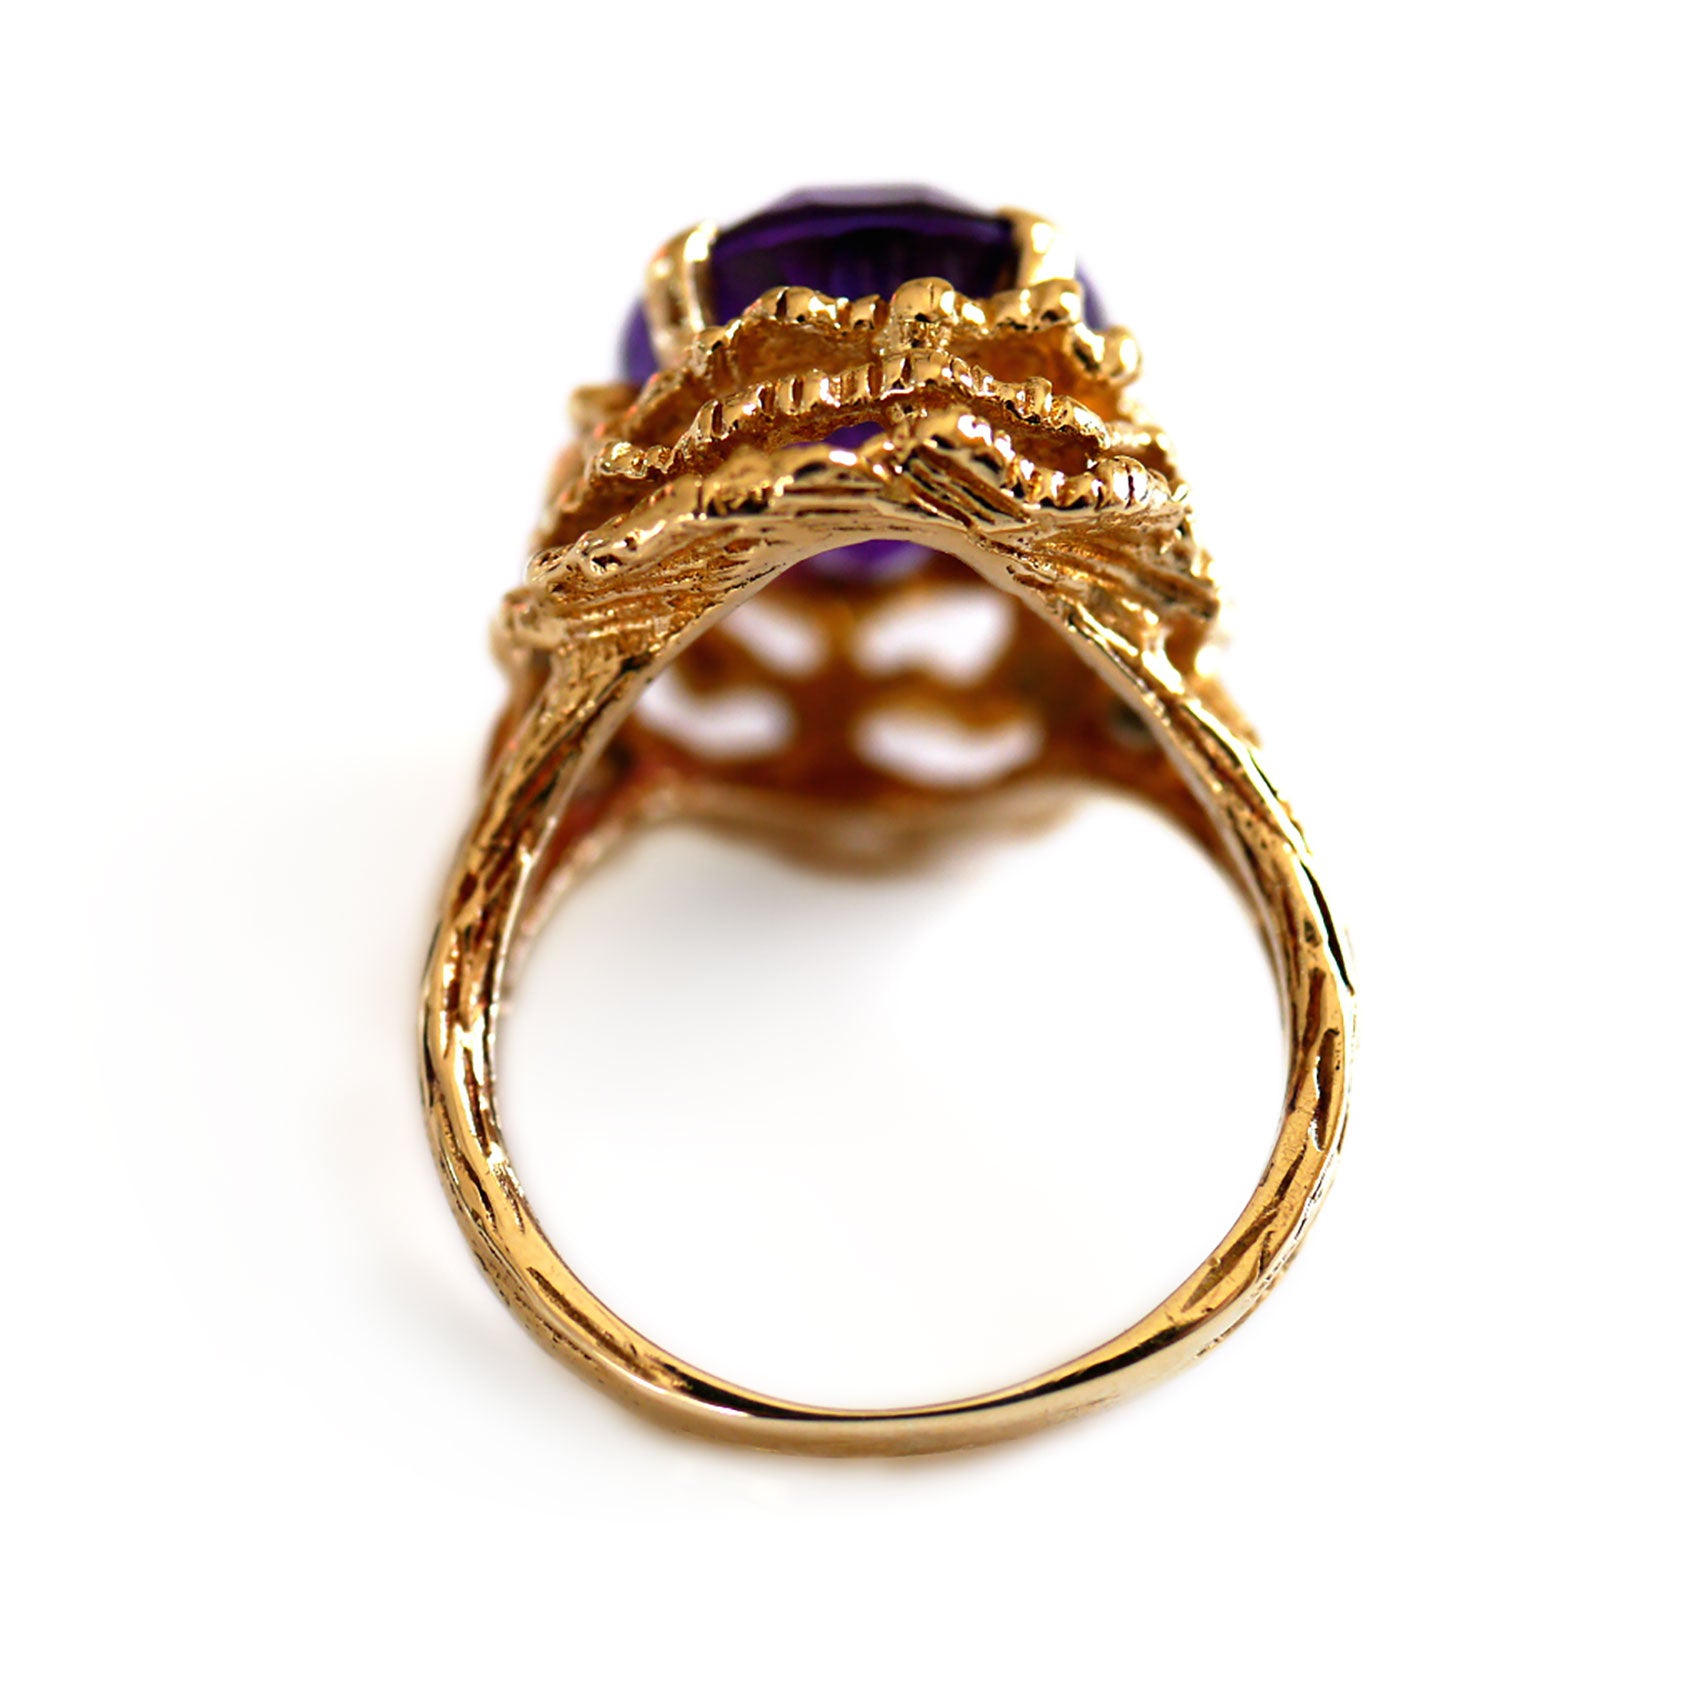 1960s Vintage Amethyst Cocktail Ring